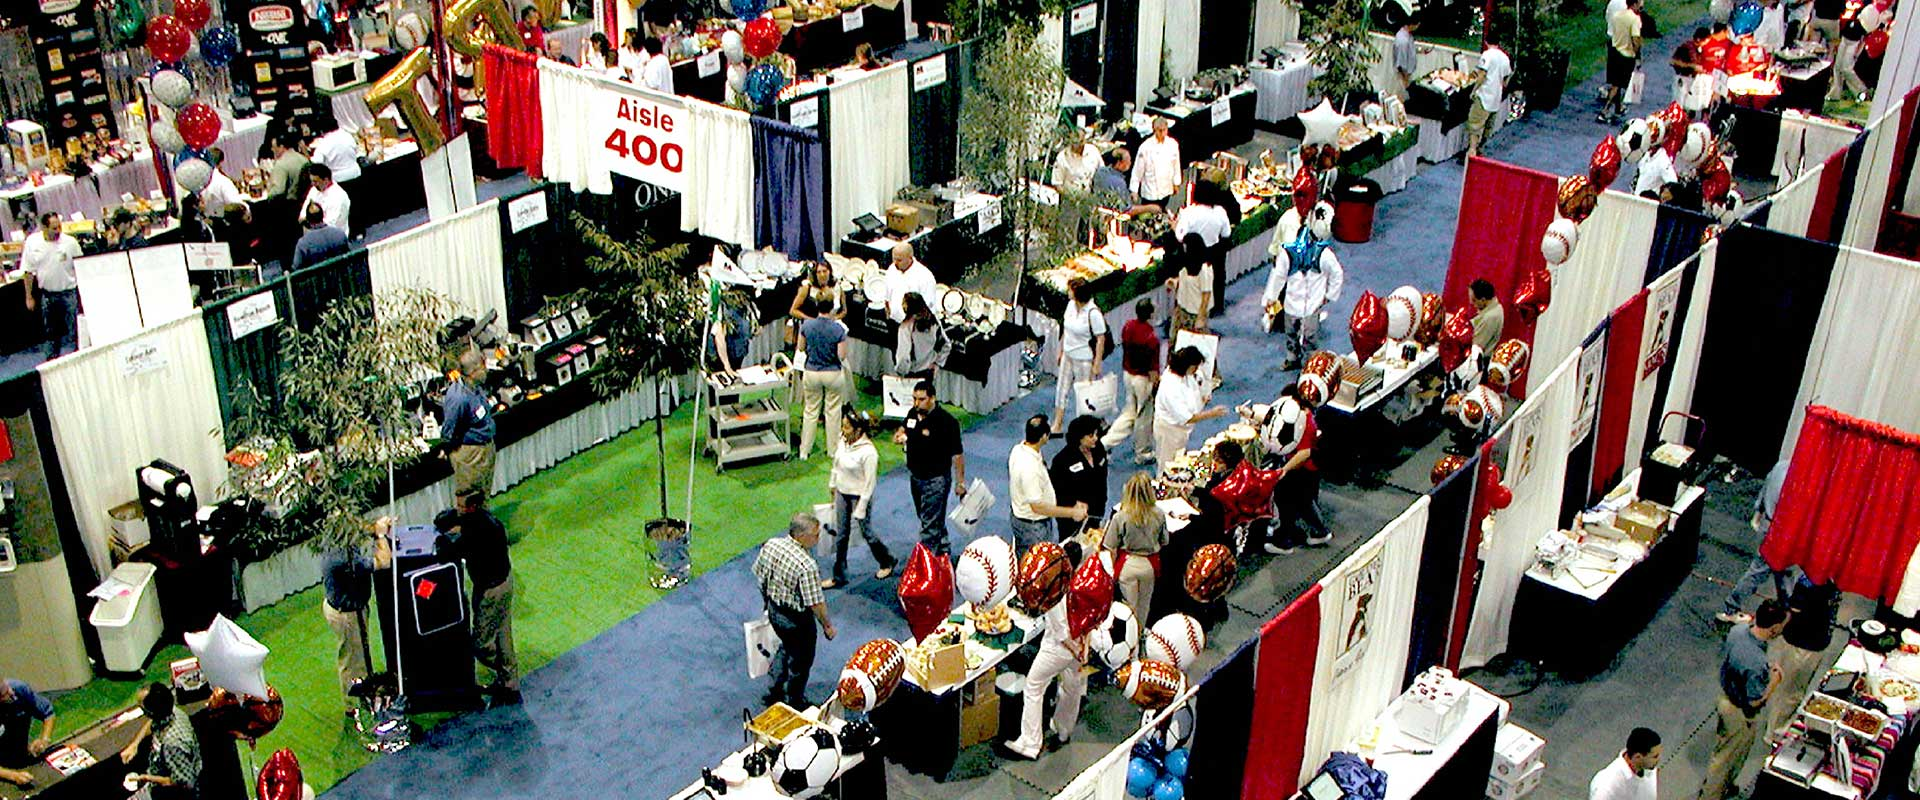 Trade Show Rentals in Fresno, Clovis, and the Central Valley